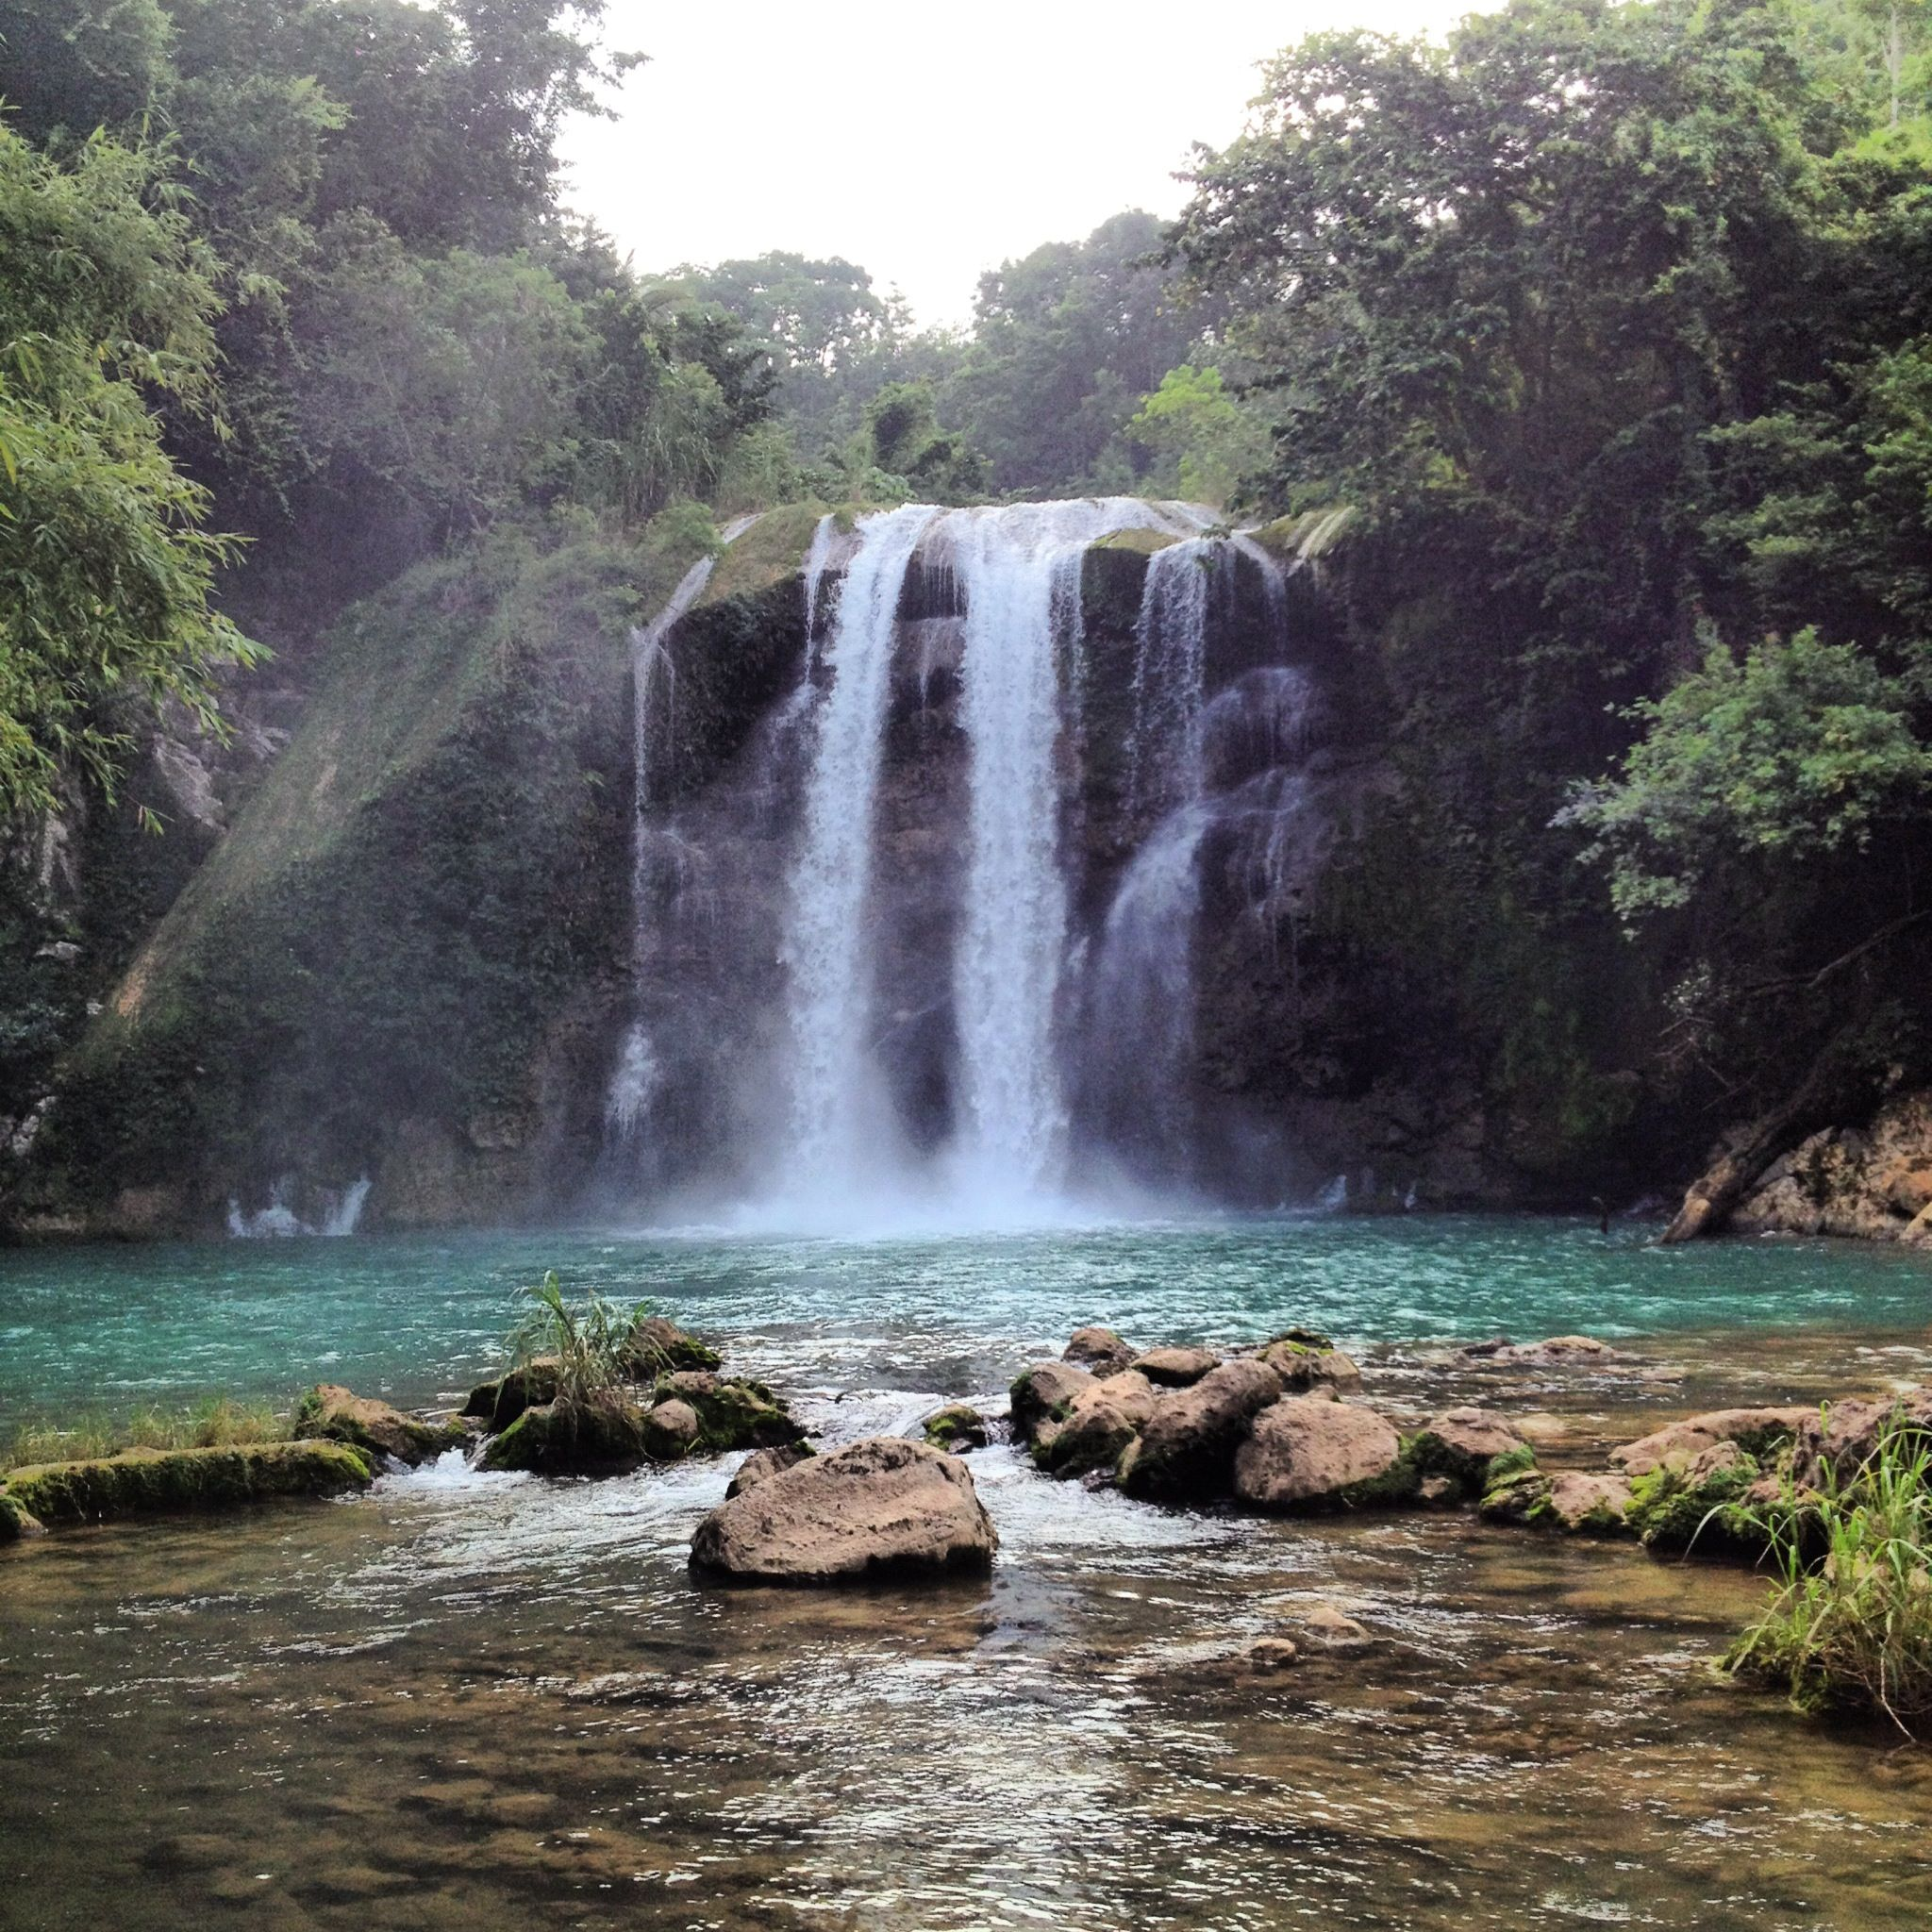 Saut Mathurine Waterfall In The South Of Haiti ( Les Cayes